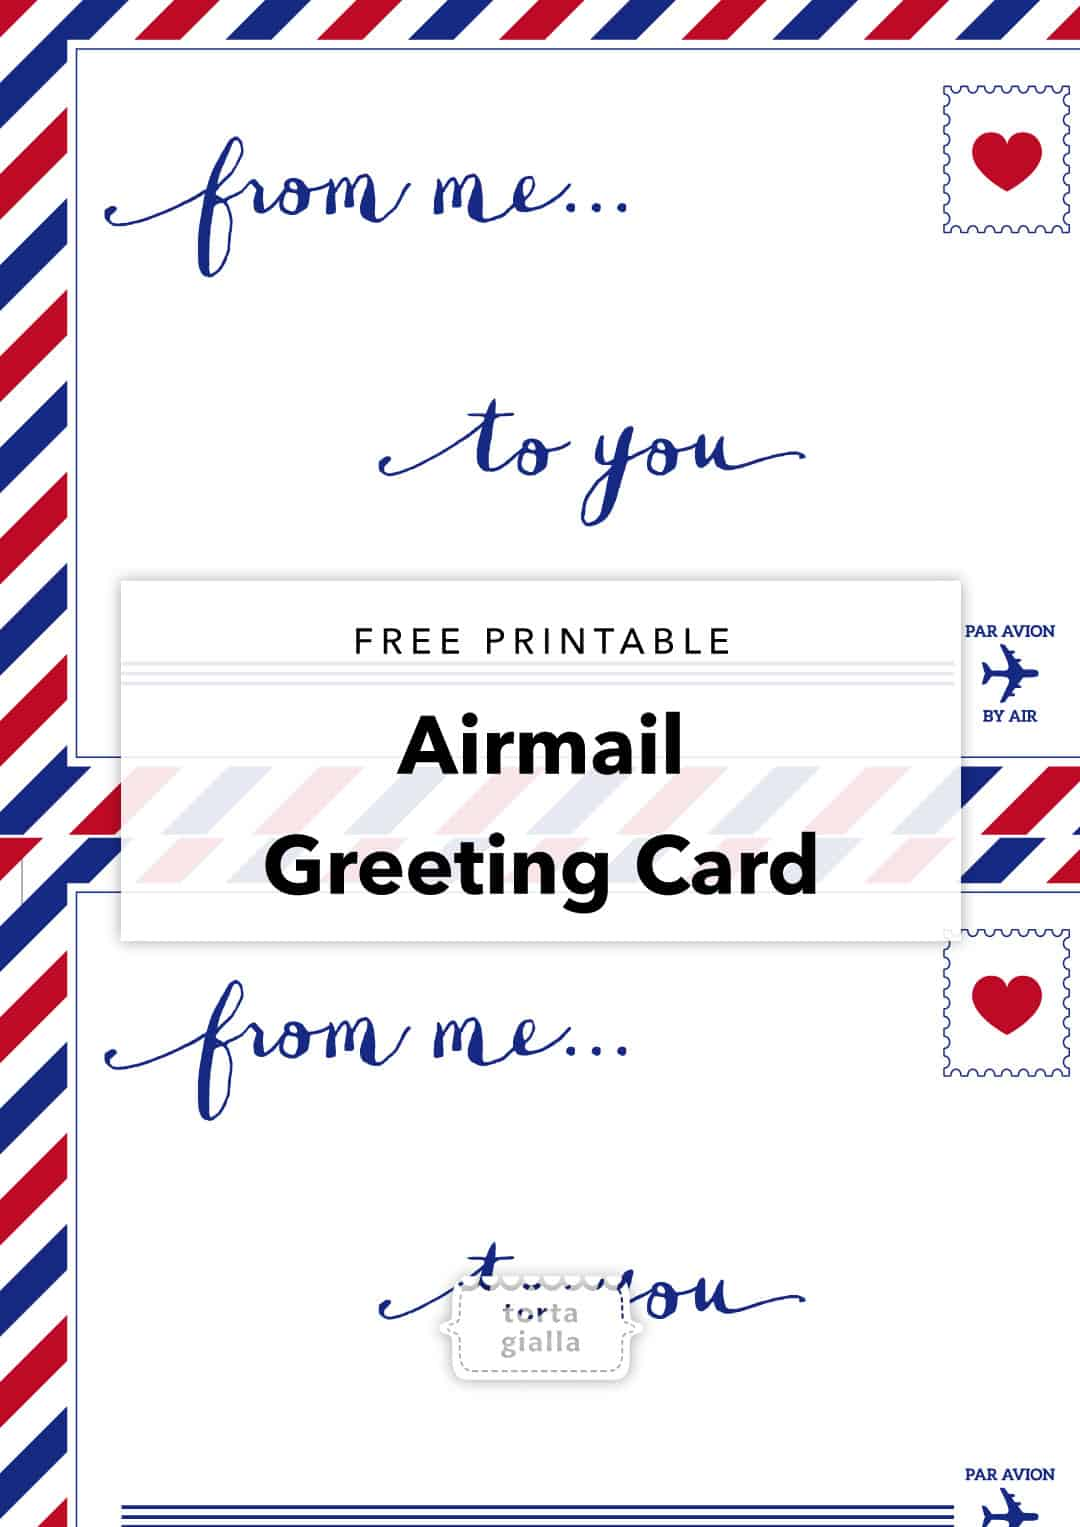 Free Printable Airmail Greeting Card